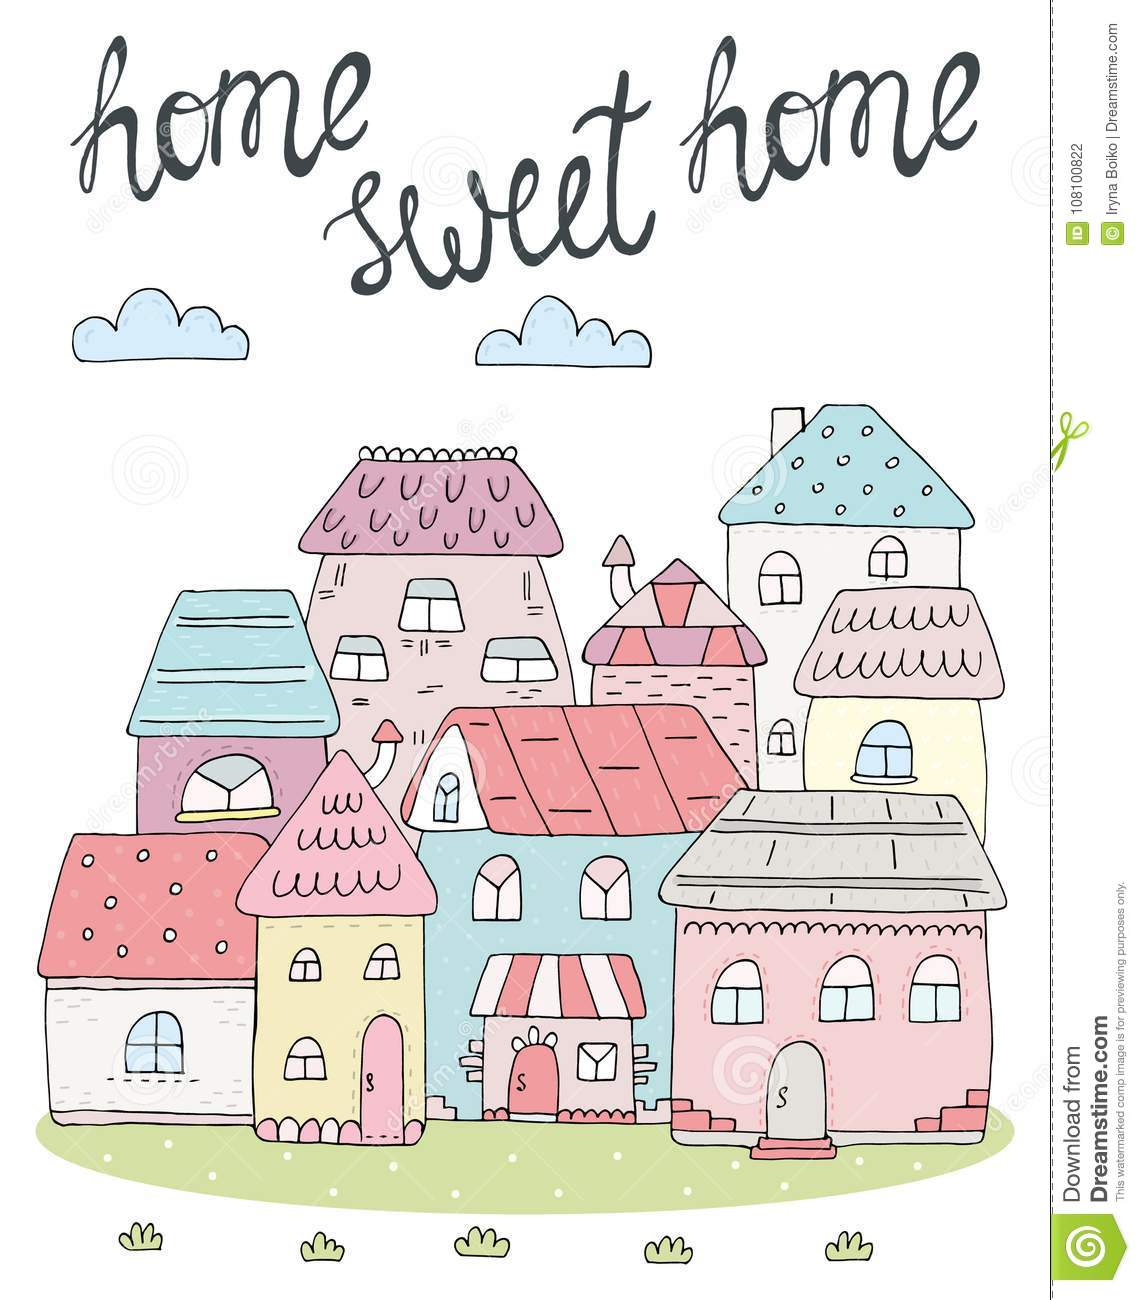 photo relating to Home Sweet Home Printable named Residence Cute Property Card. Hand Drawn Colourful Residences. Vector